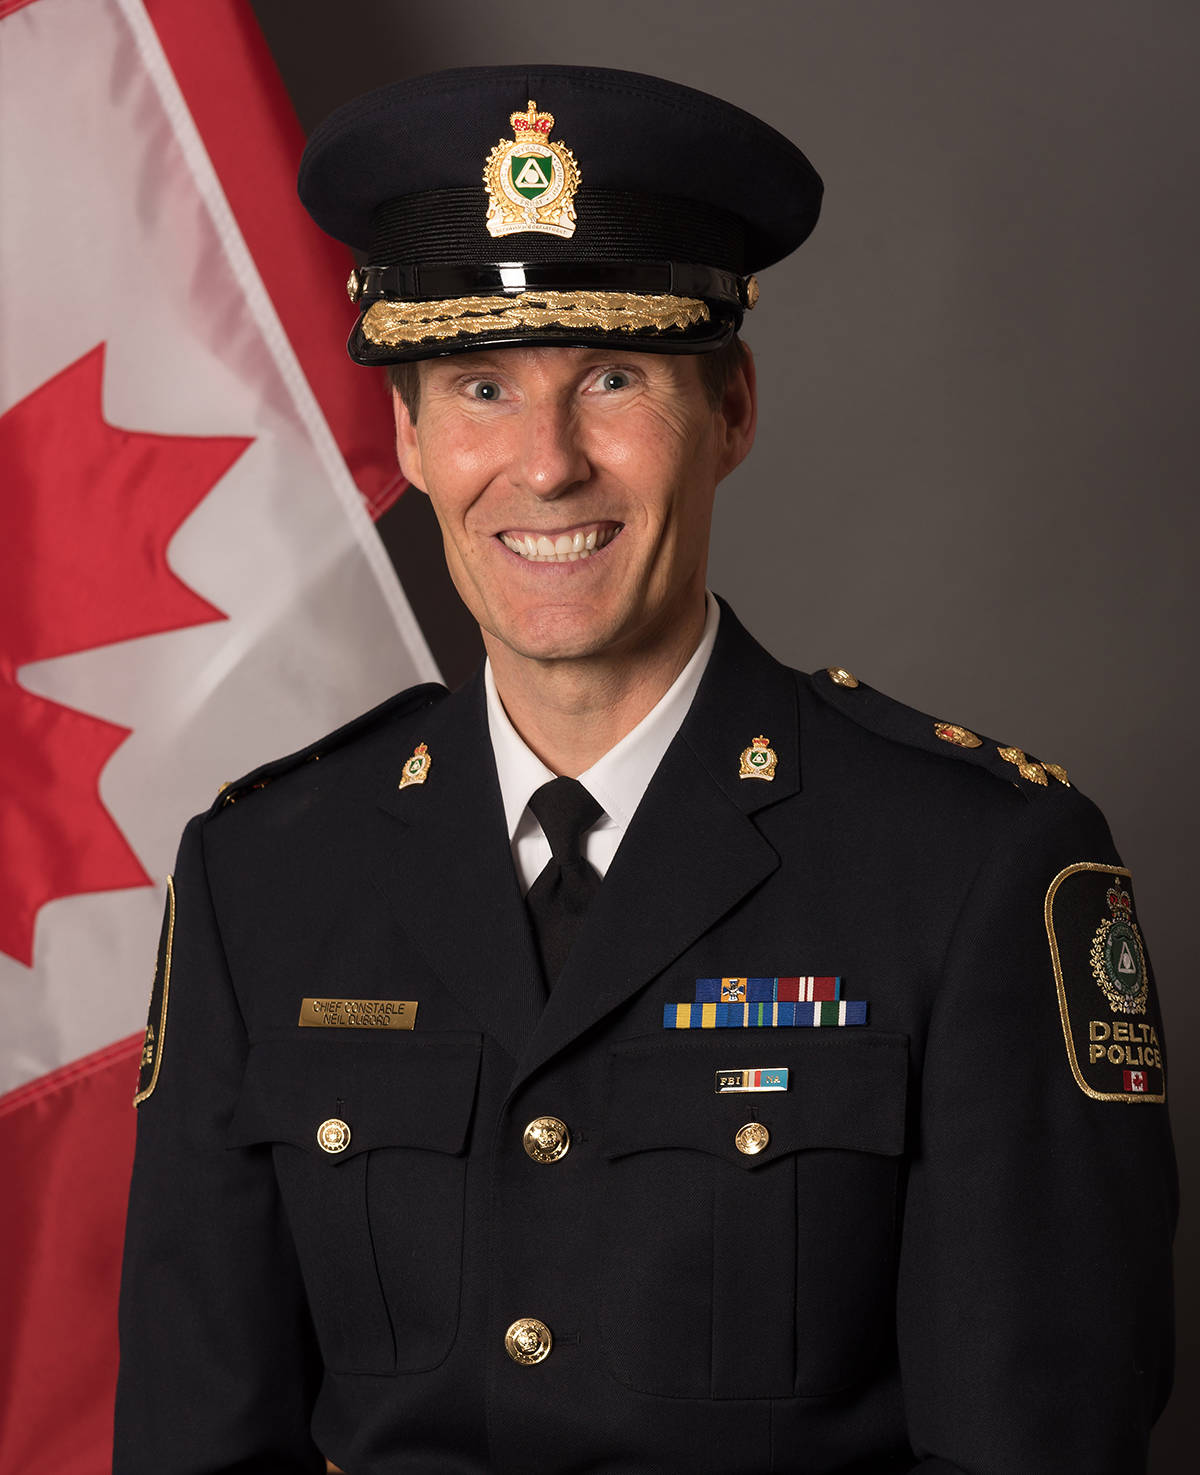 DPD Chief Constable Neil Dubord. (Delta Police Department photo)